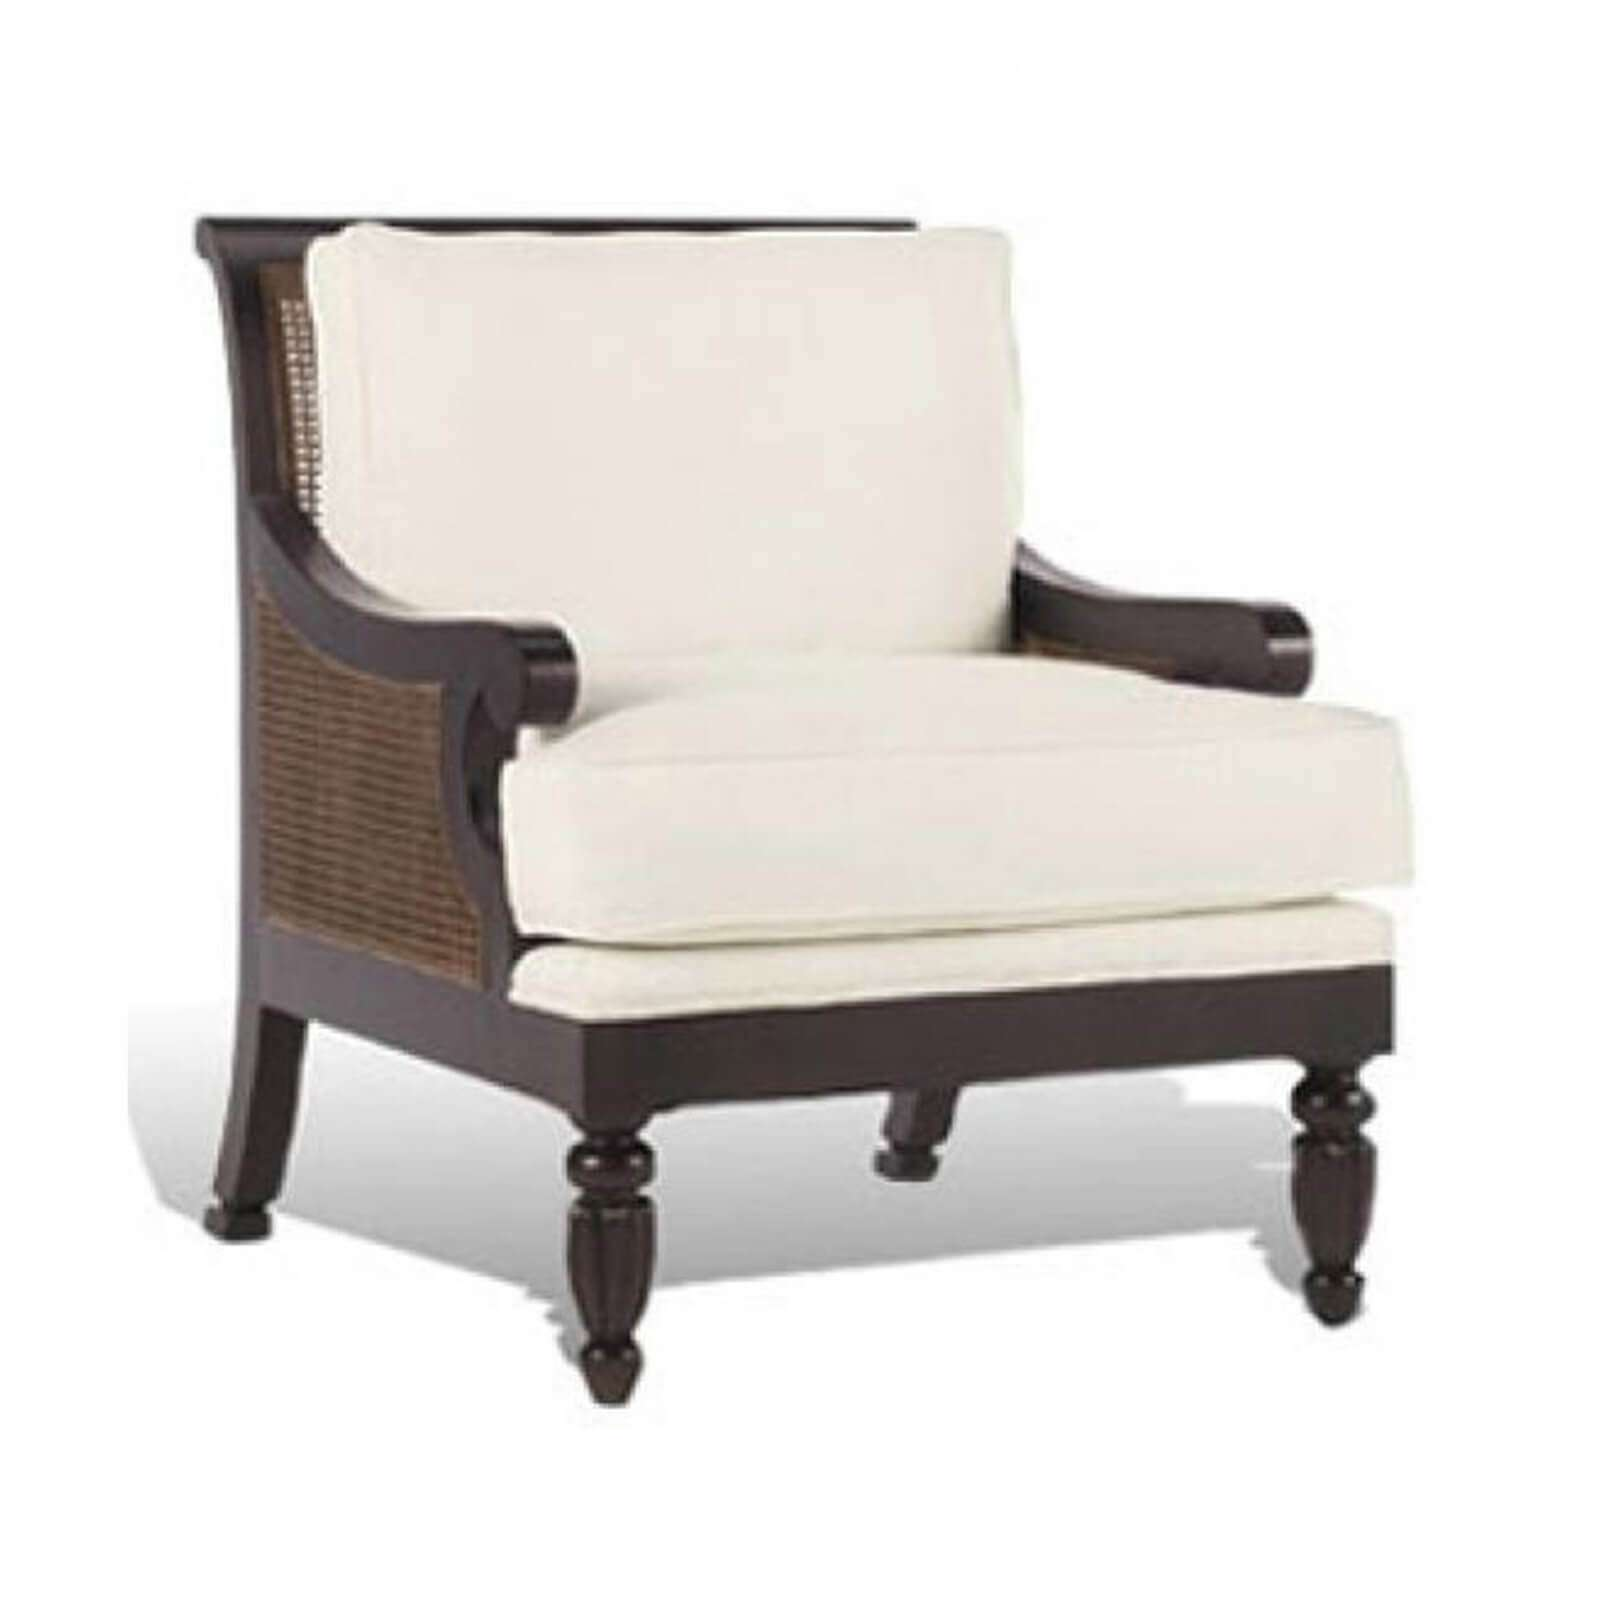 MADRAS ARM CHAIR 2 - STUART MEMBERY HOME COLLECTION